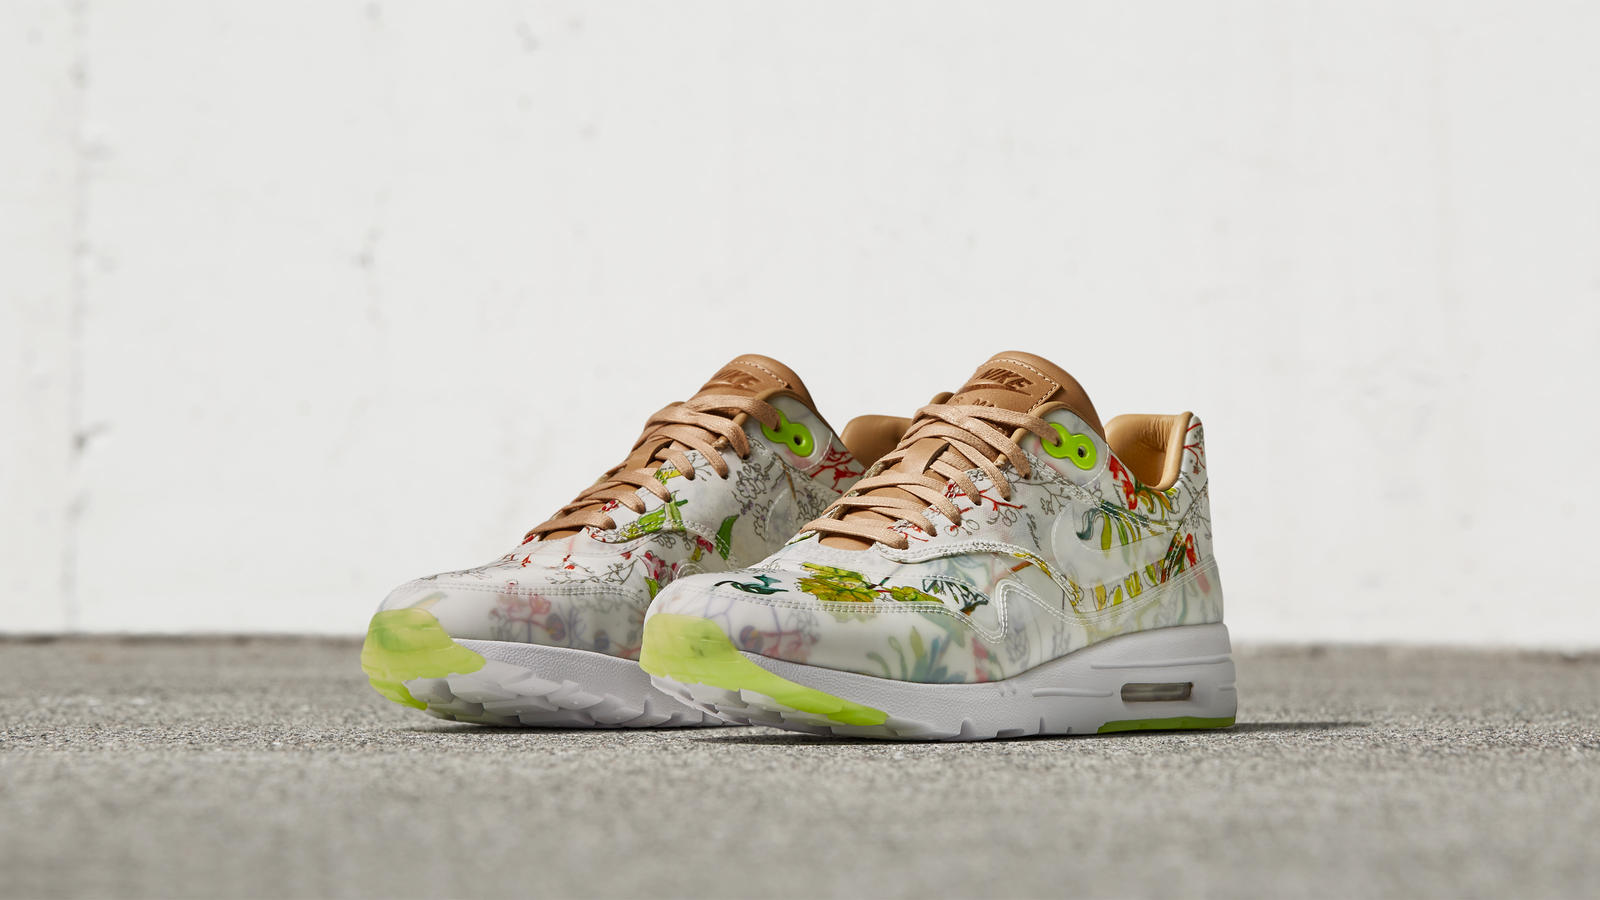 Nike news sneaker feed liberty 1768 hd 1600